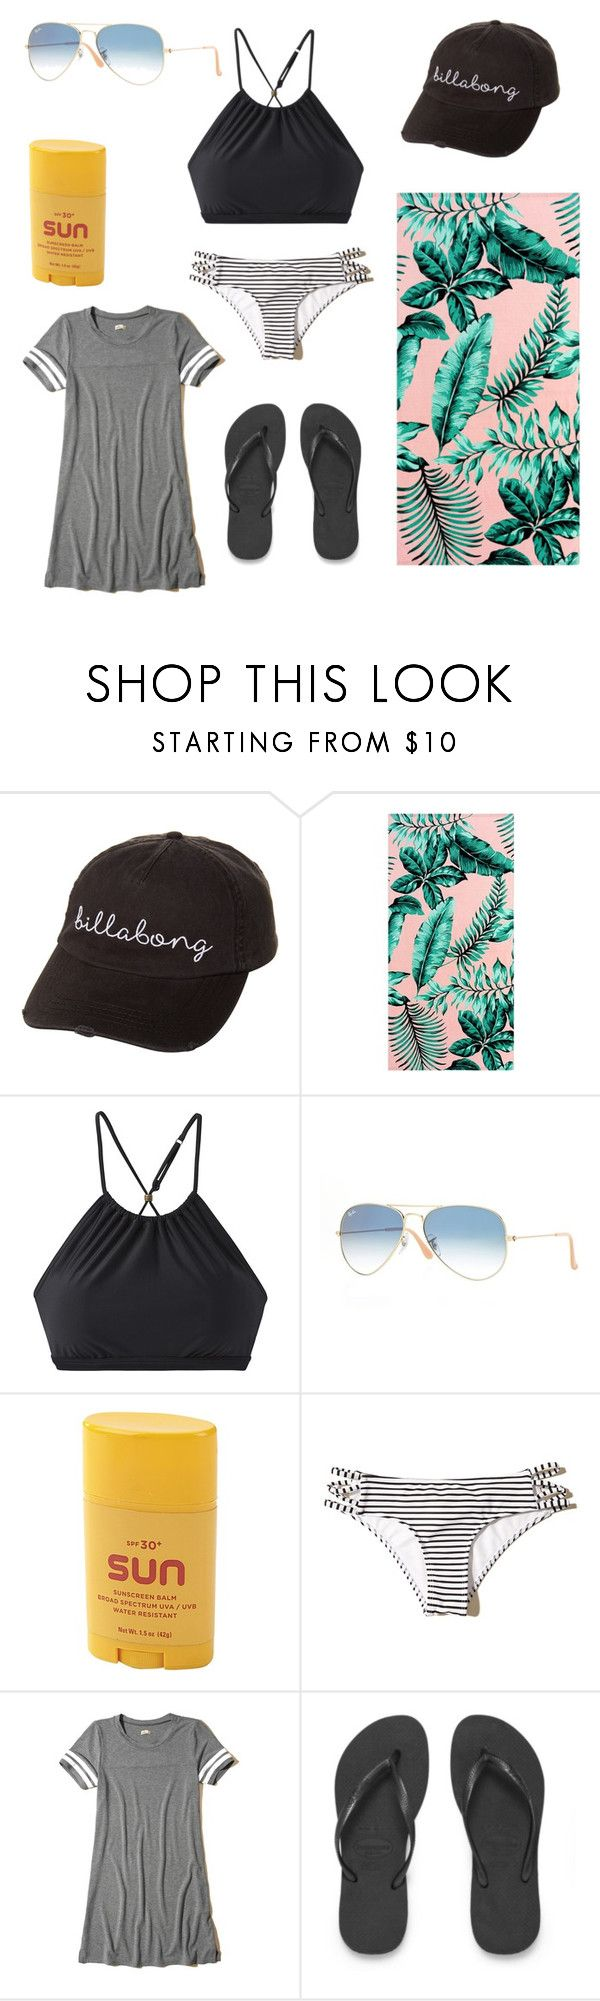 """Beach/ pool day Outfit"" by neongirlz5 on Polyvore featuring Billabong, PBteen, prAna, Ray-Ban, Title Nine, Hollister Co. and Havaianas"